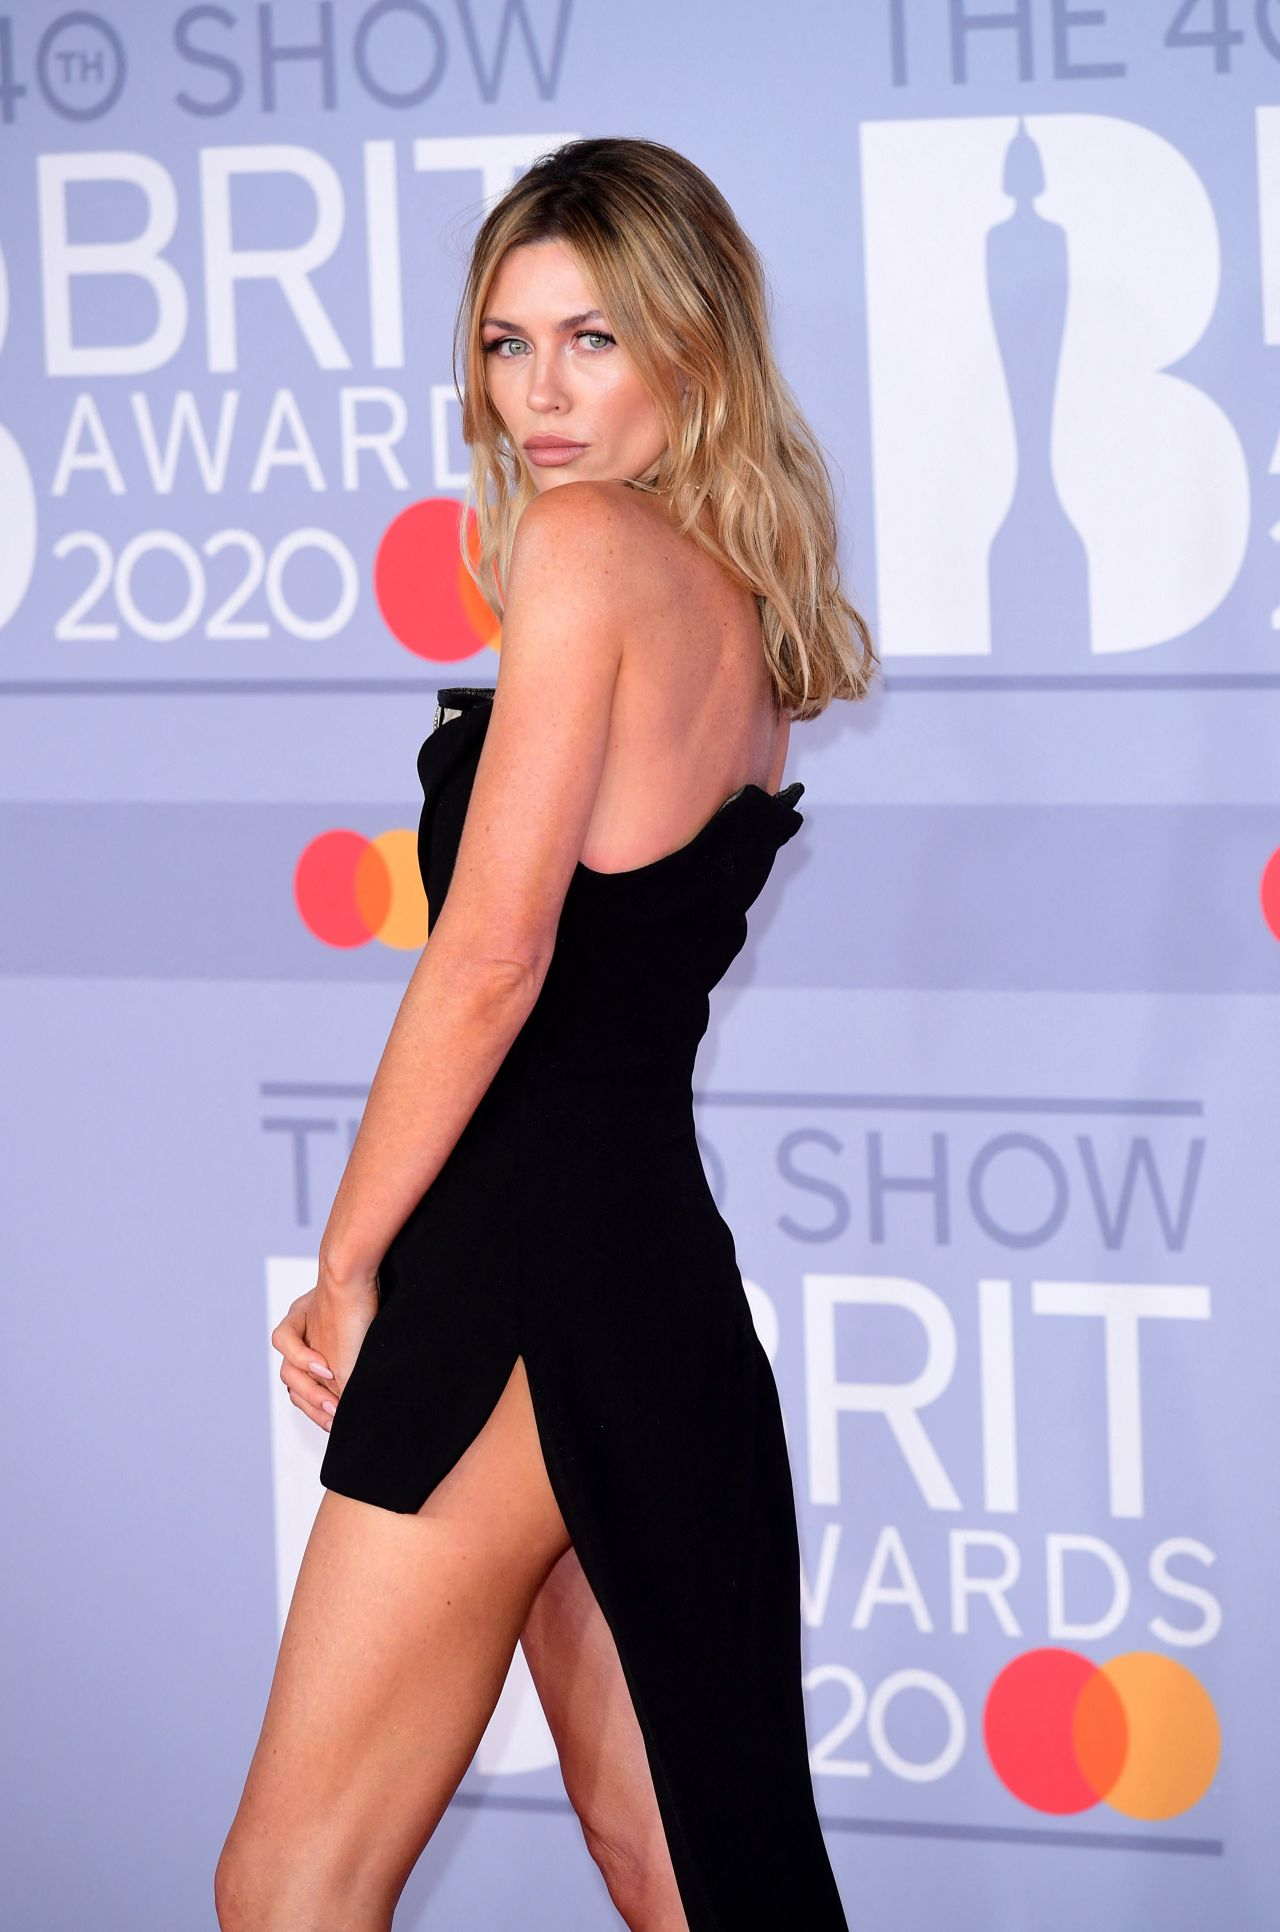 Abbey Clancy Brit Awards 2020 Celebmafia 1,286 likes · 4 talking about this. abbey clancy brit awards 2020